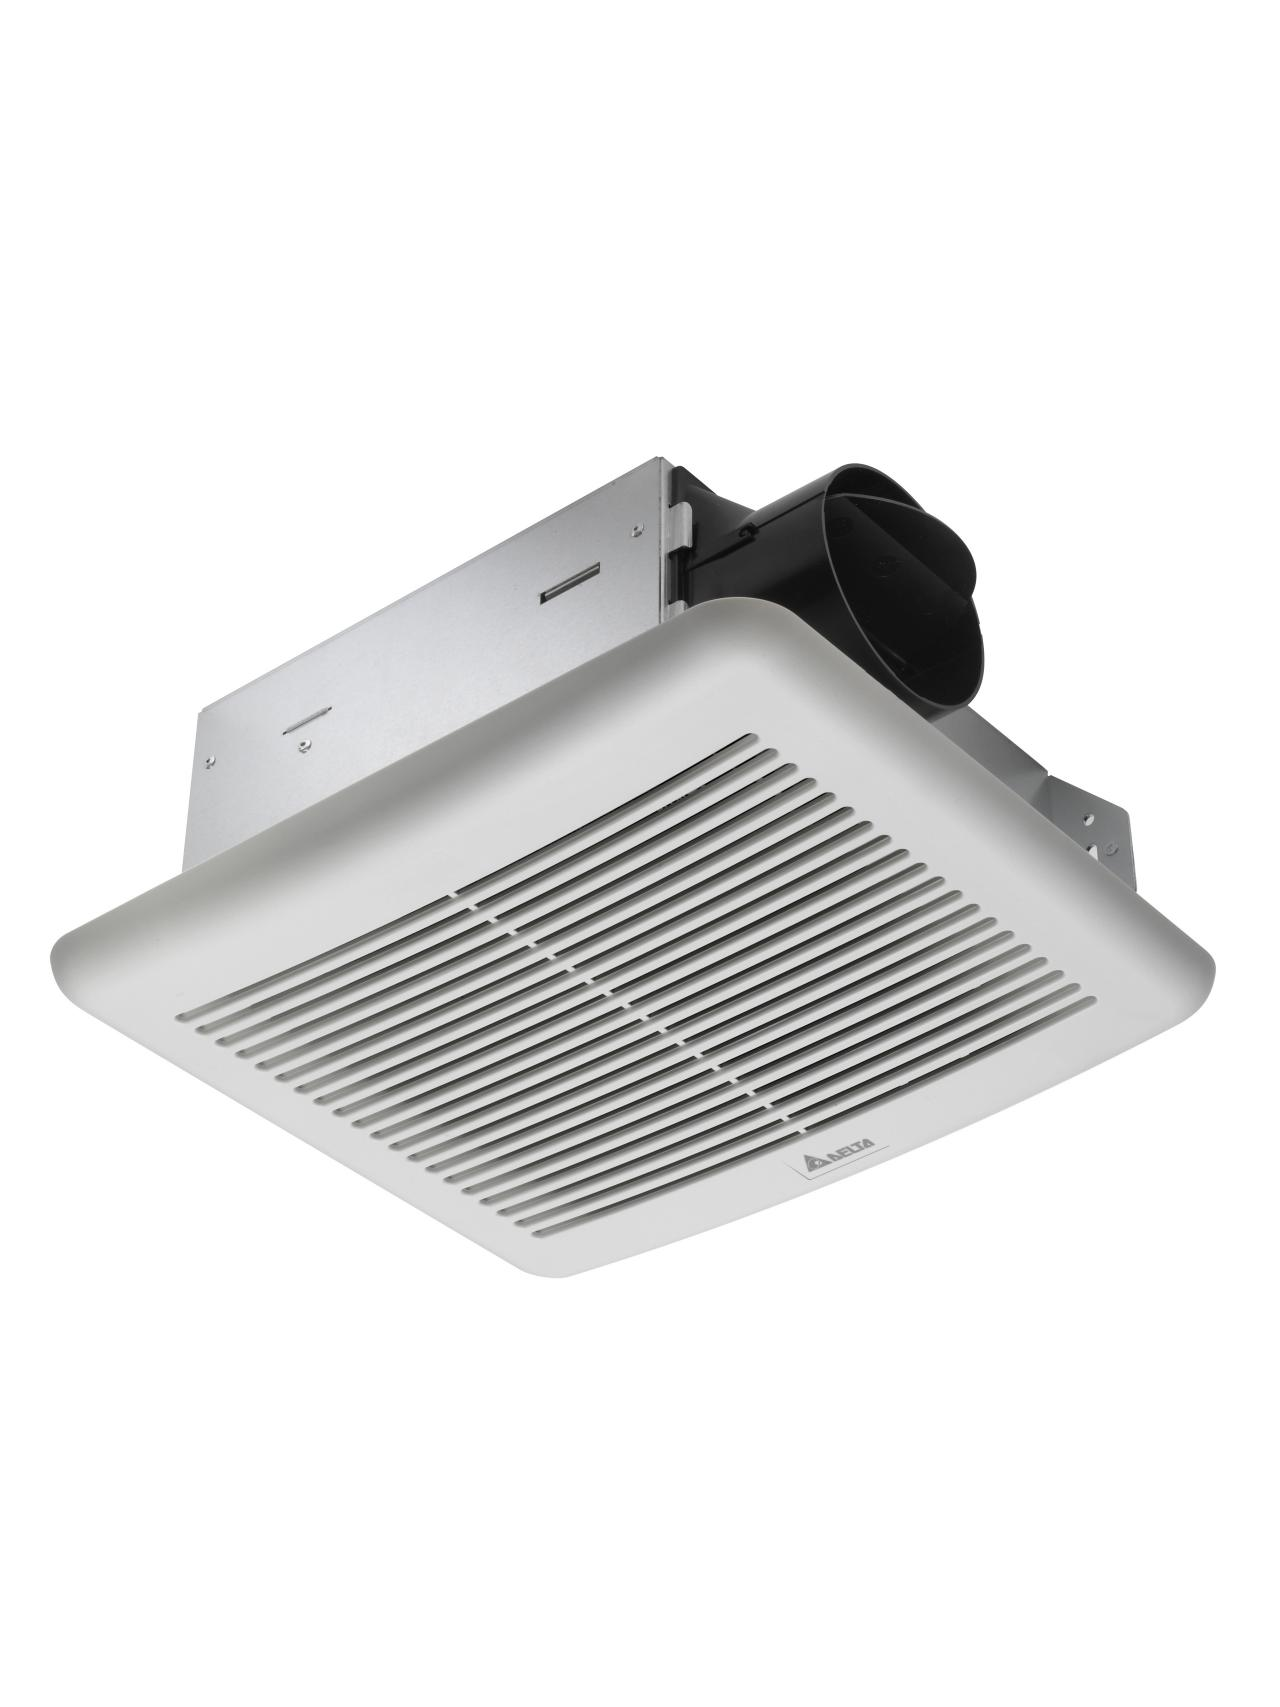 Choosing a bath ventilation fan hgtv for Bathroom ceiling fans